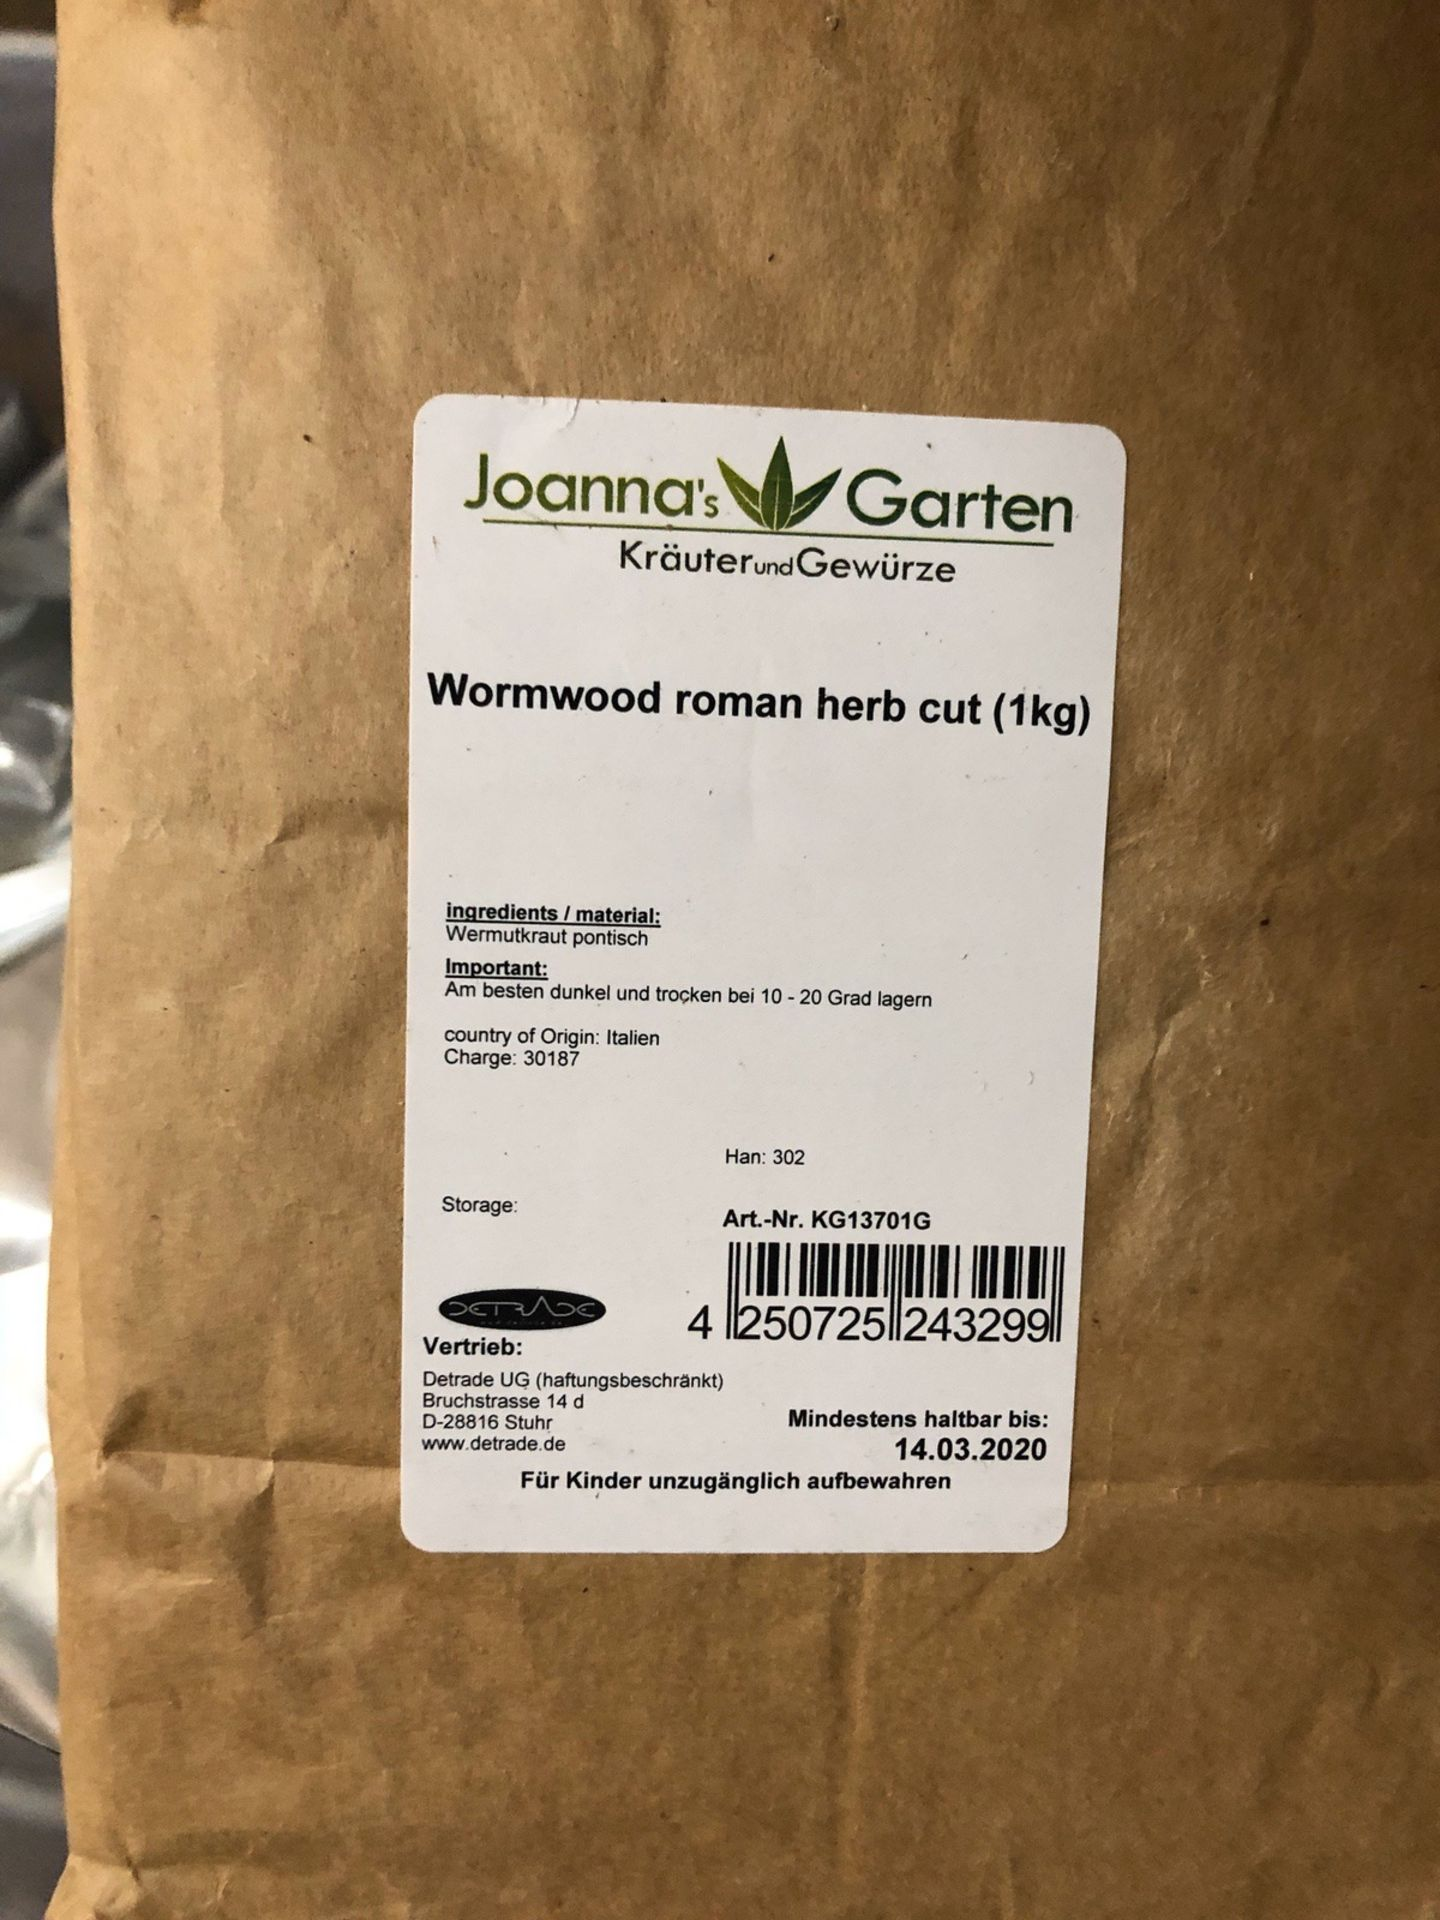 Lot 100 - Lot of Herbs and Botanicals: Wormwood Herbs | Rig Fee: $20 or HC